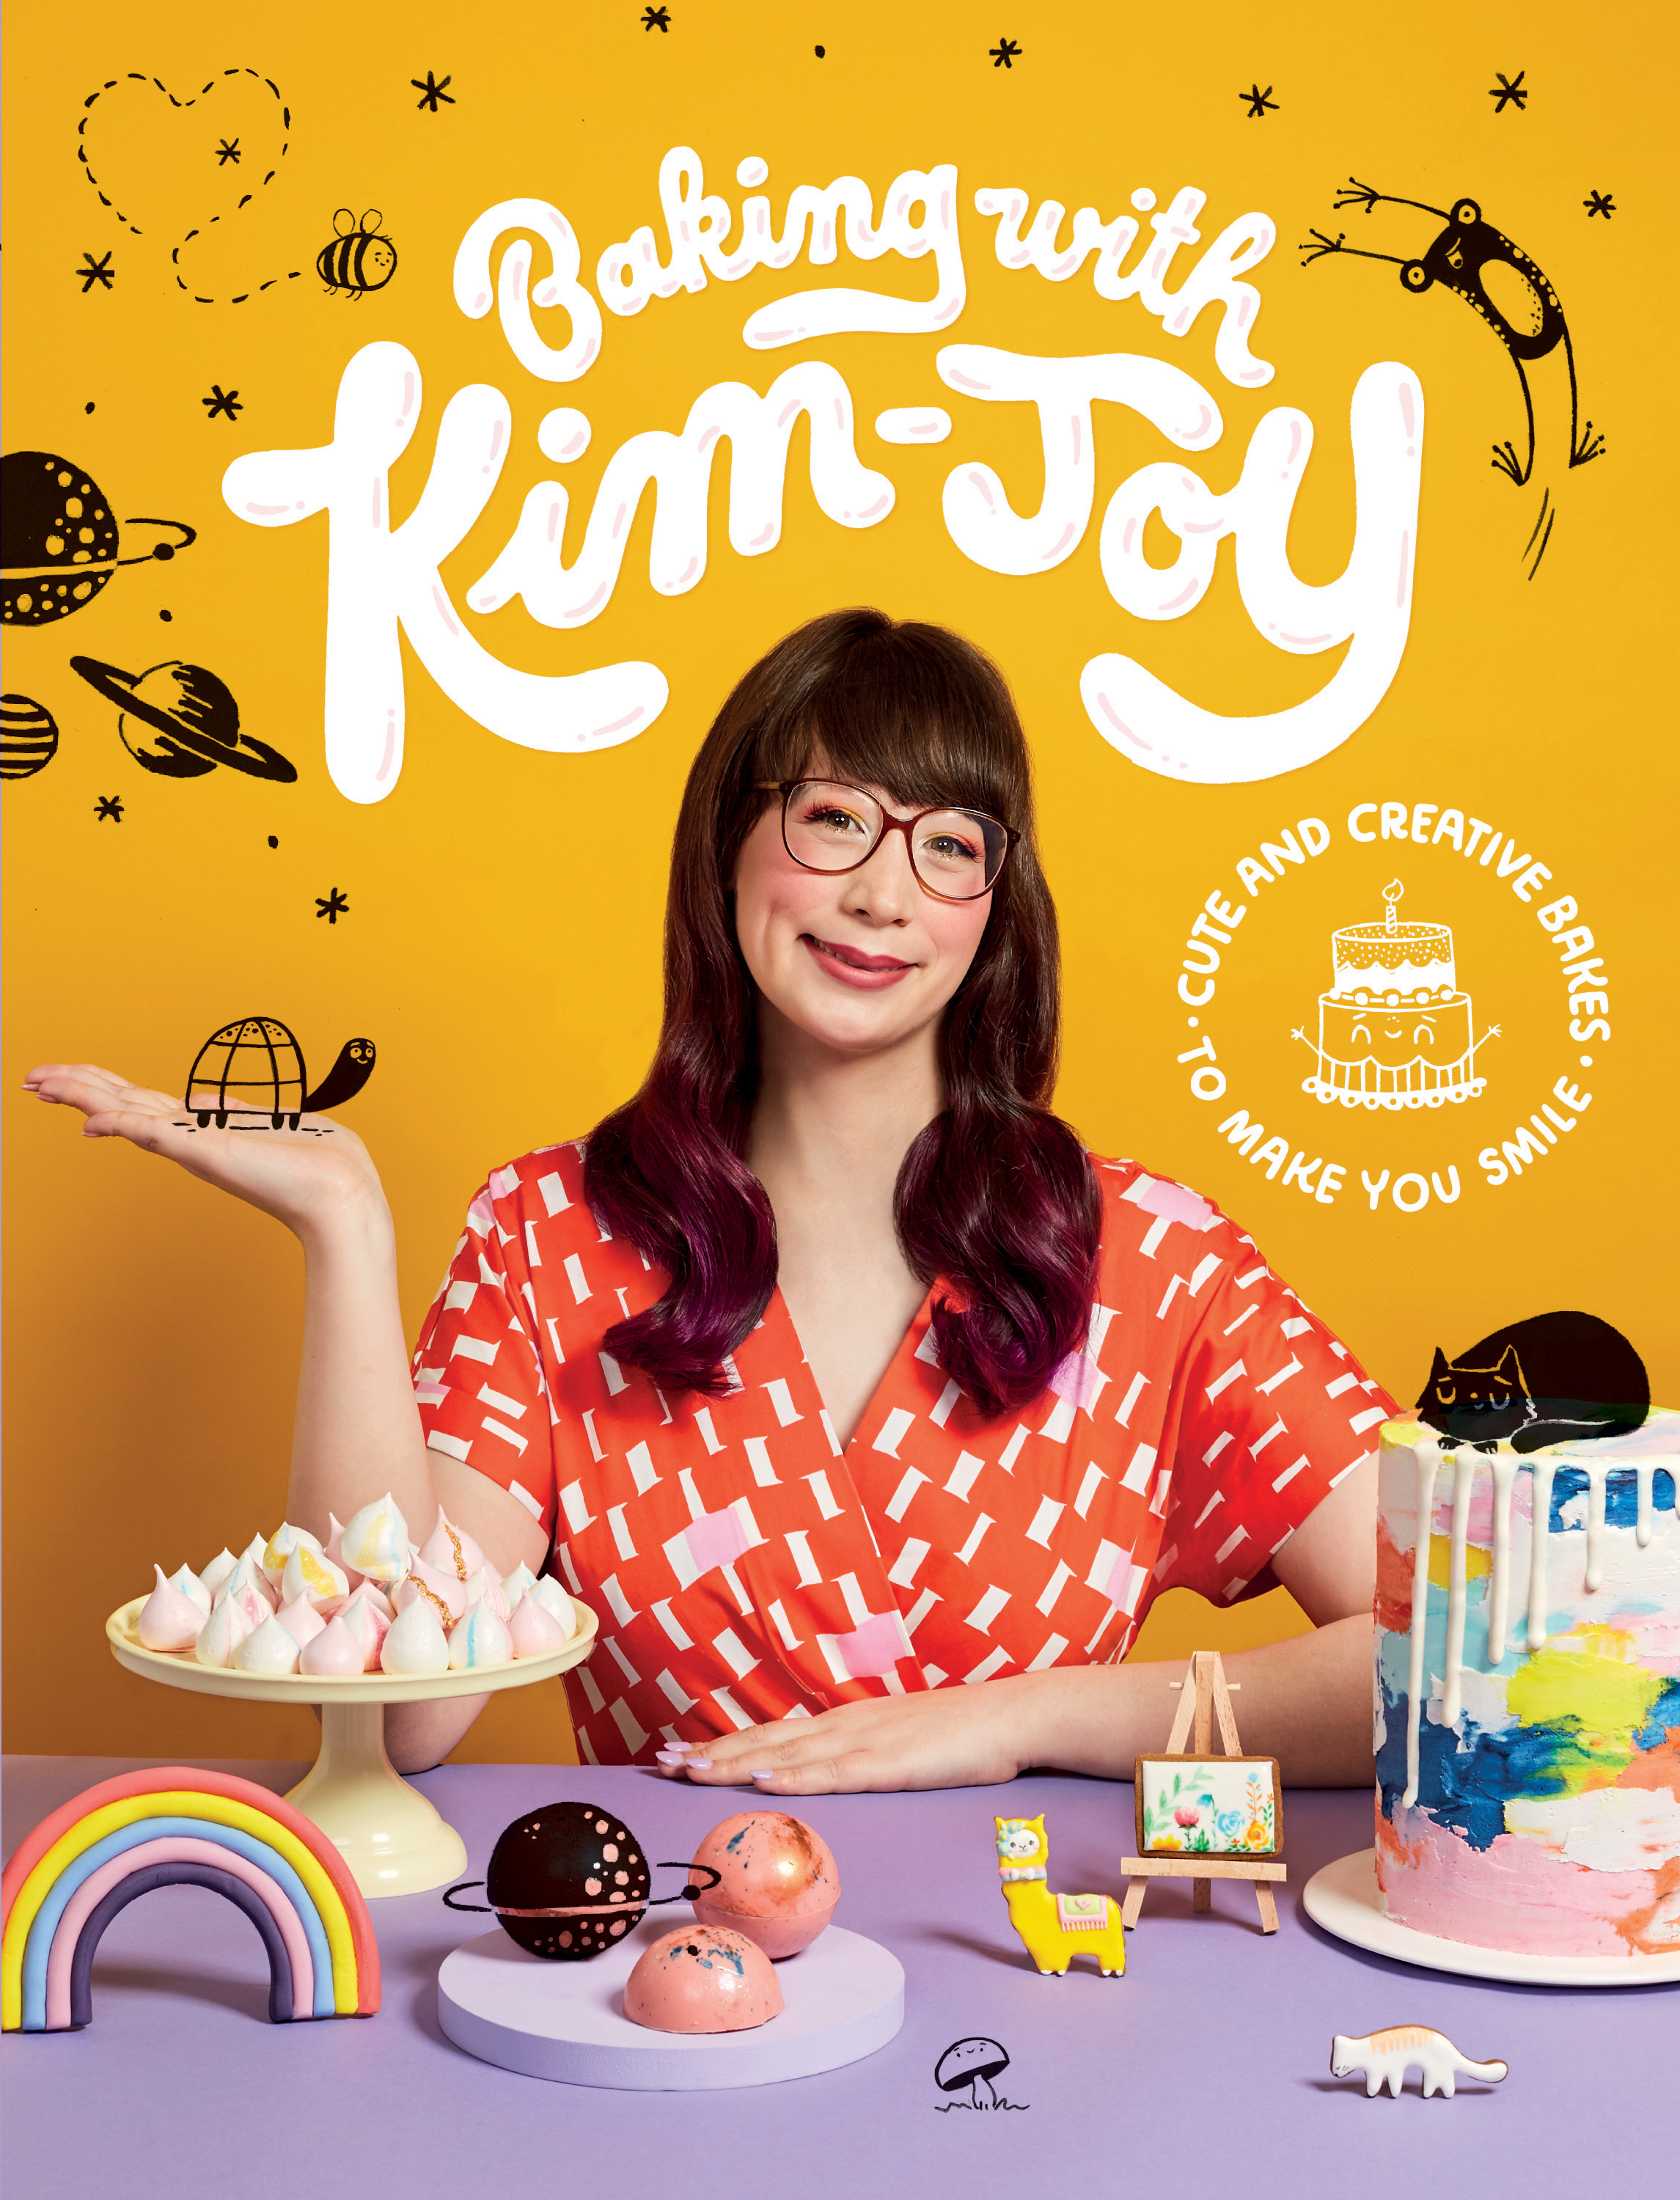 Baking with Kim-Joy Cute and Creative Bakes to Make You Smile